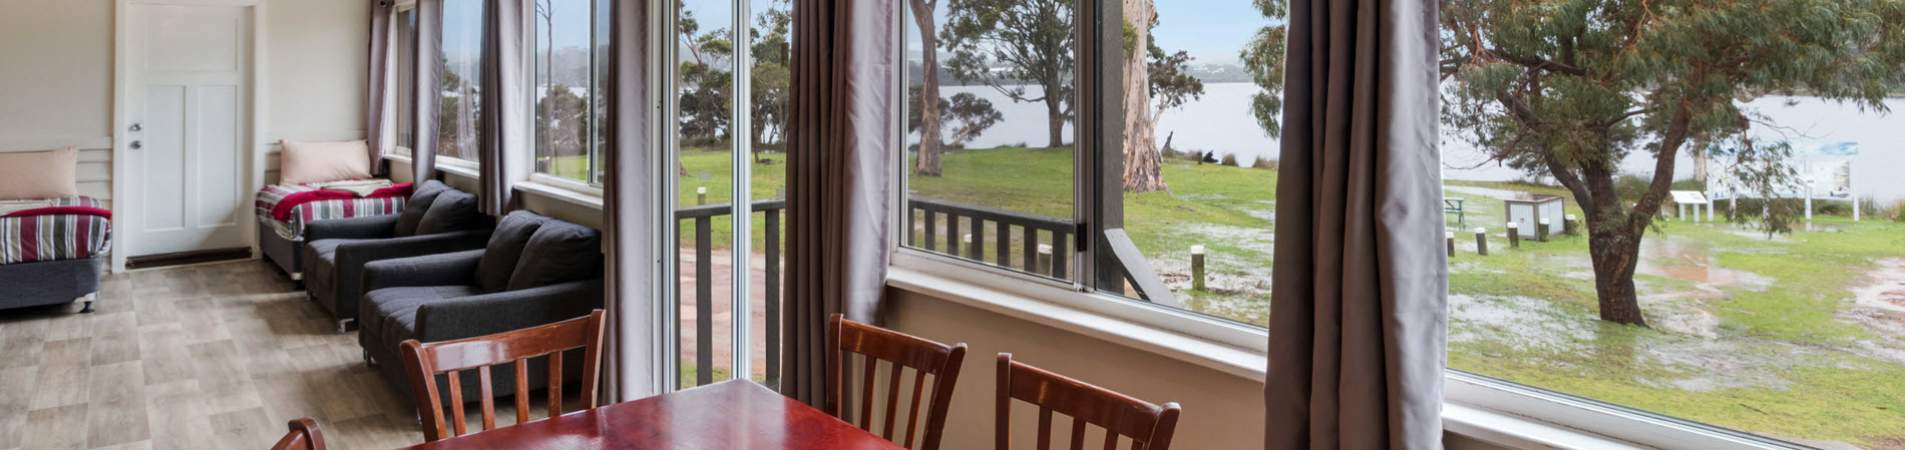 walpole rest point caravan park accommodation - banner 1